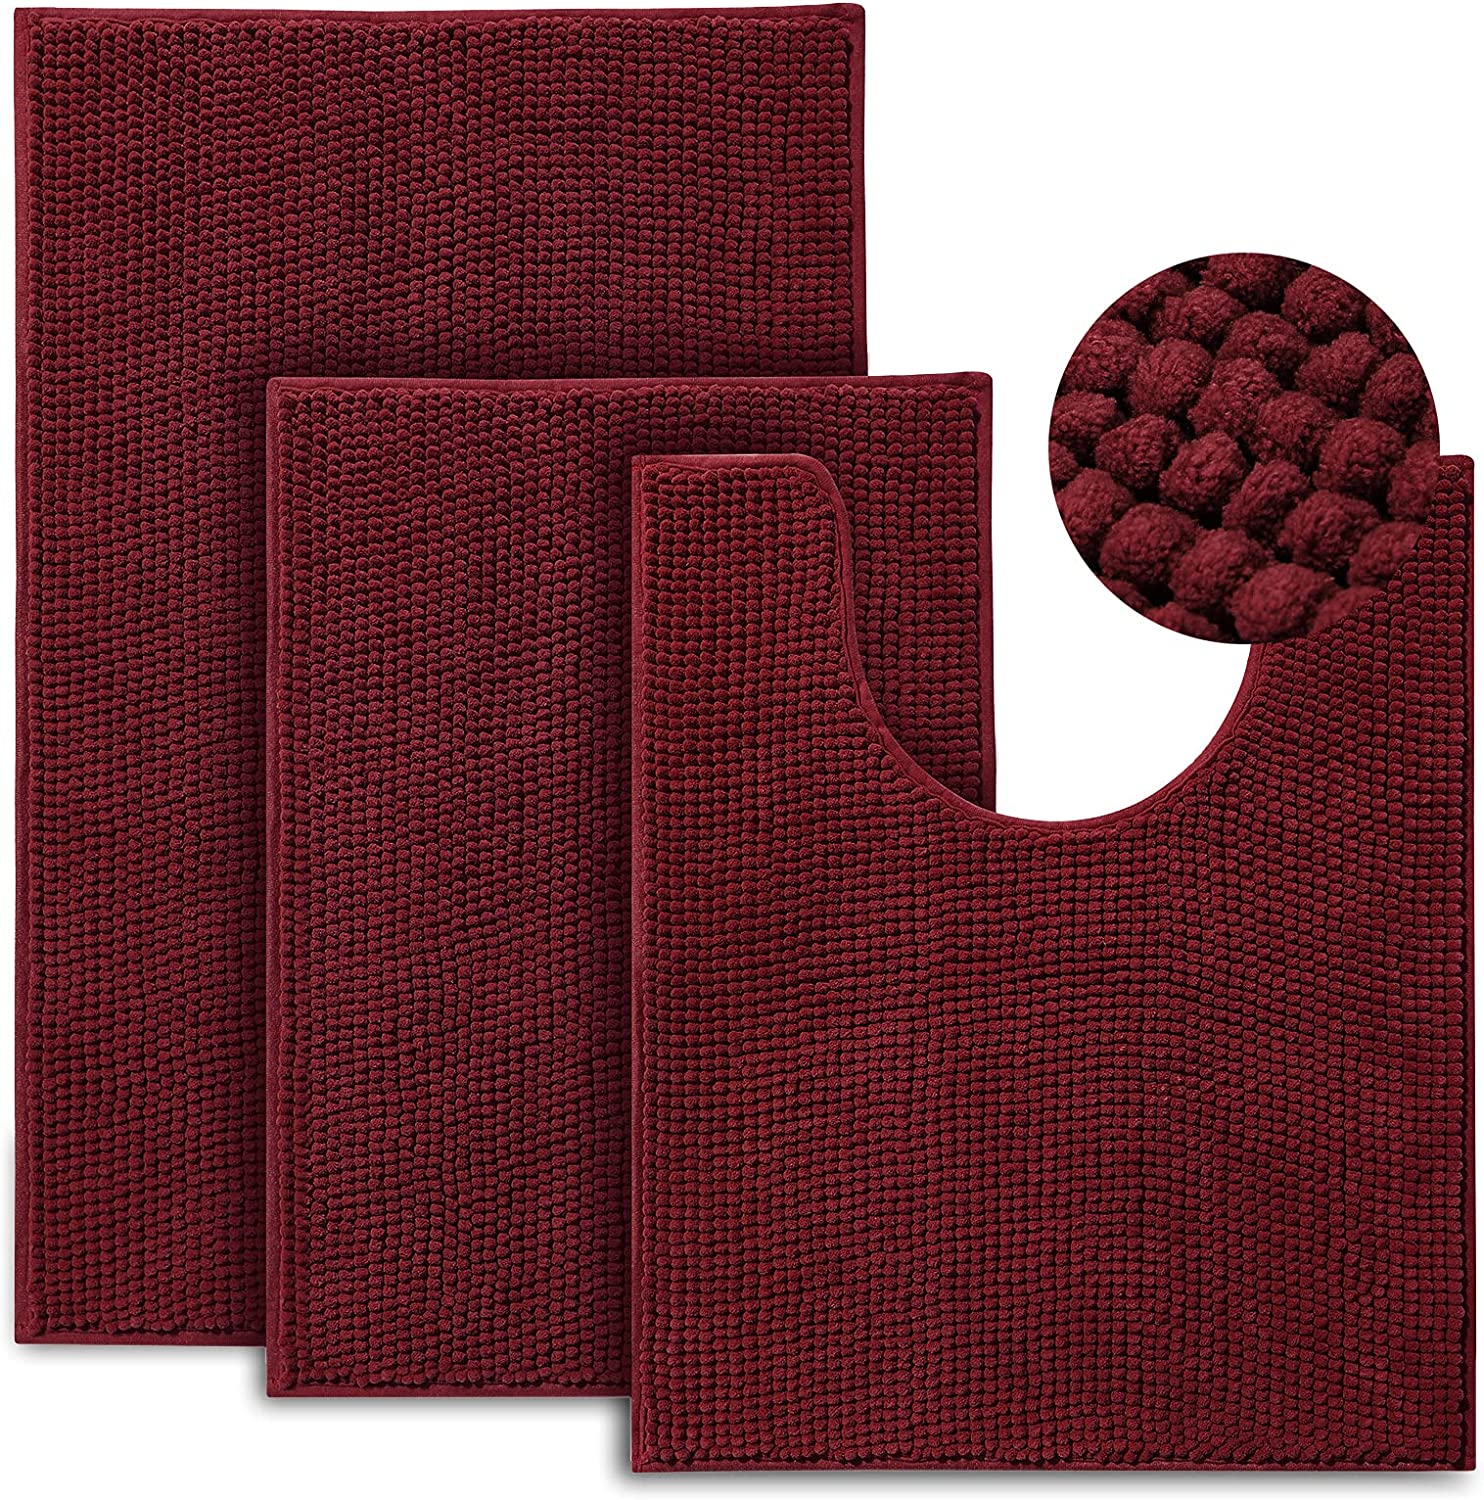 Urvoix Bathroom Rugs Set - 3 Bath Shipping included Non-Slip Ultra Soft Pieces Chicago Mall Mat